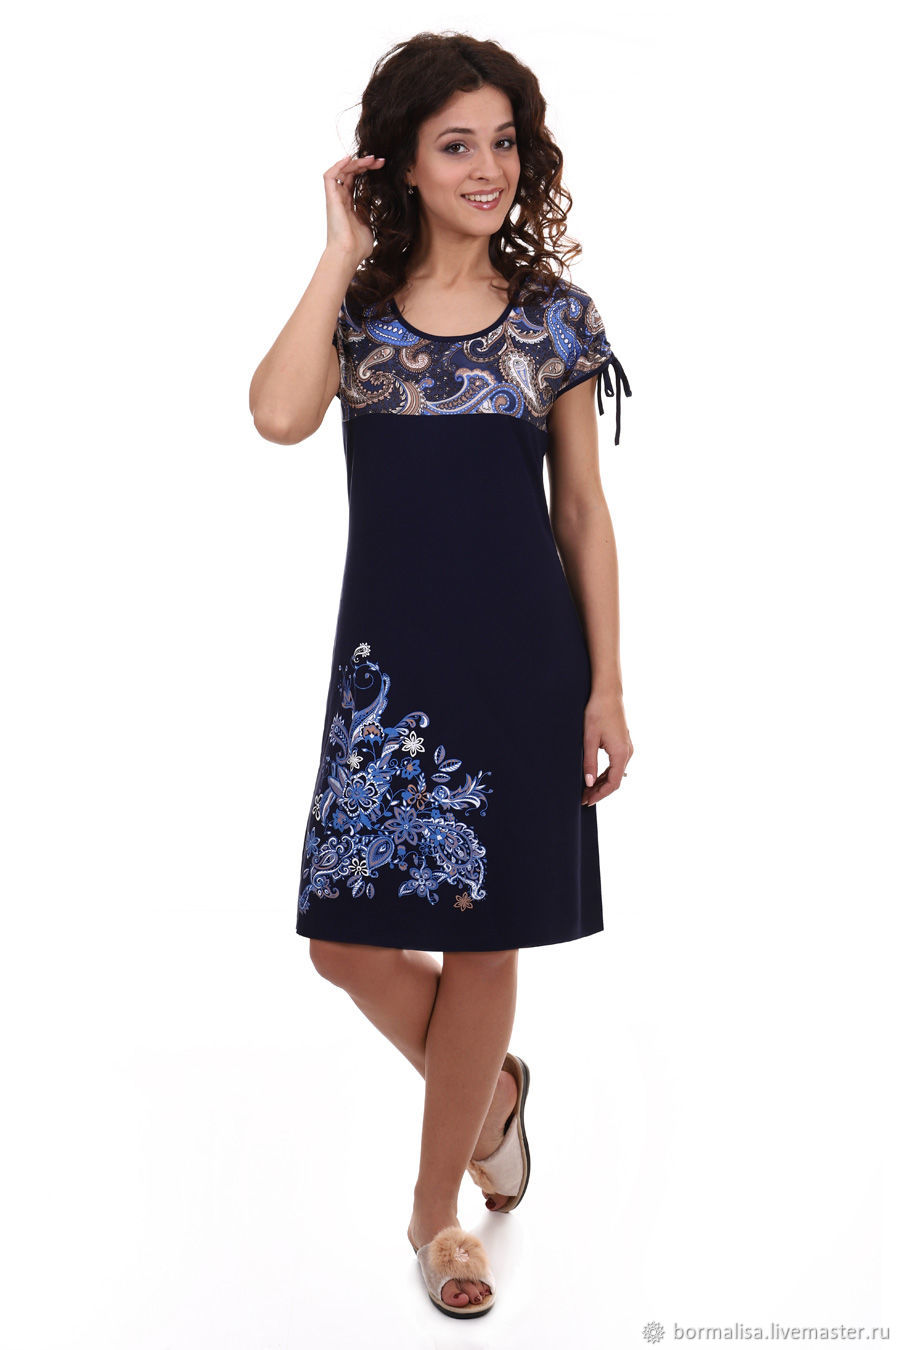 Clothing Ladies Online Shopping Dress